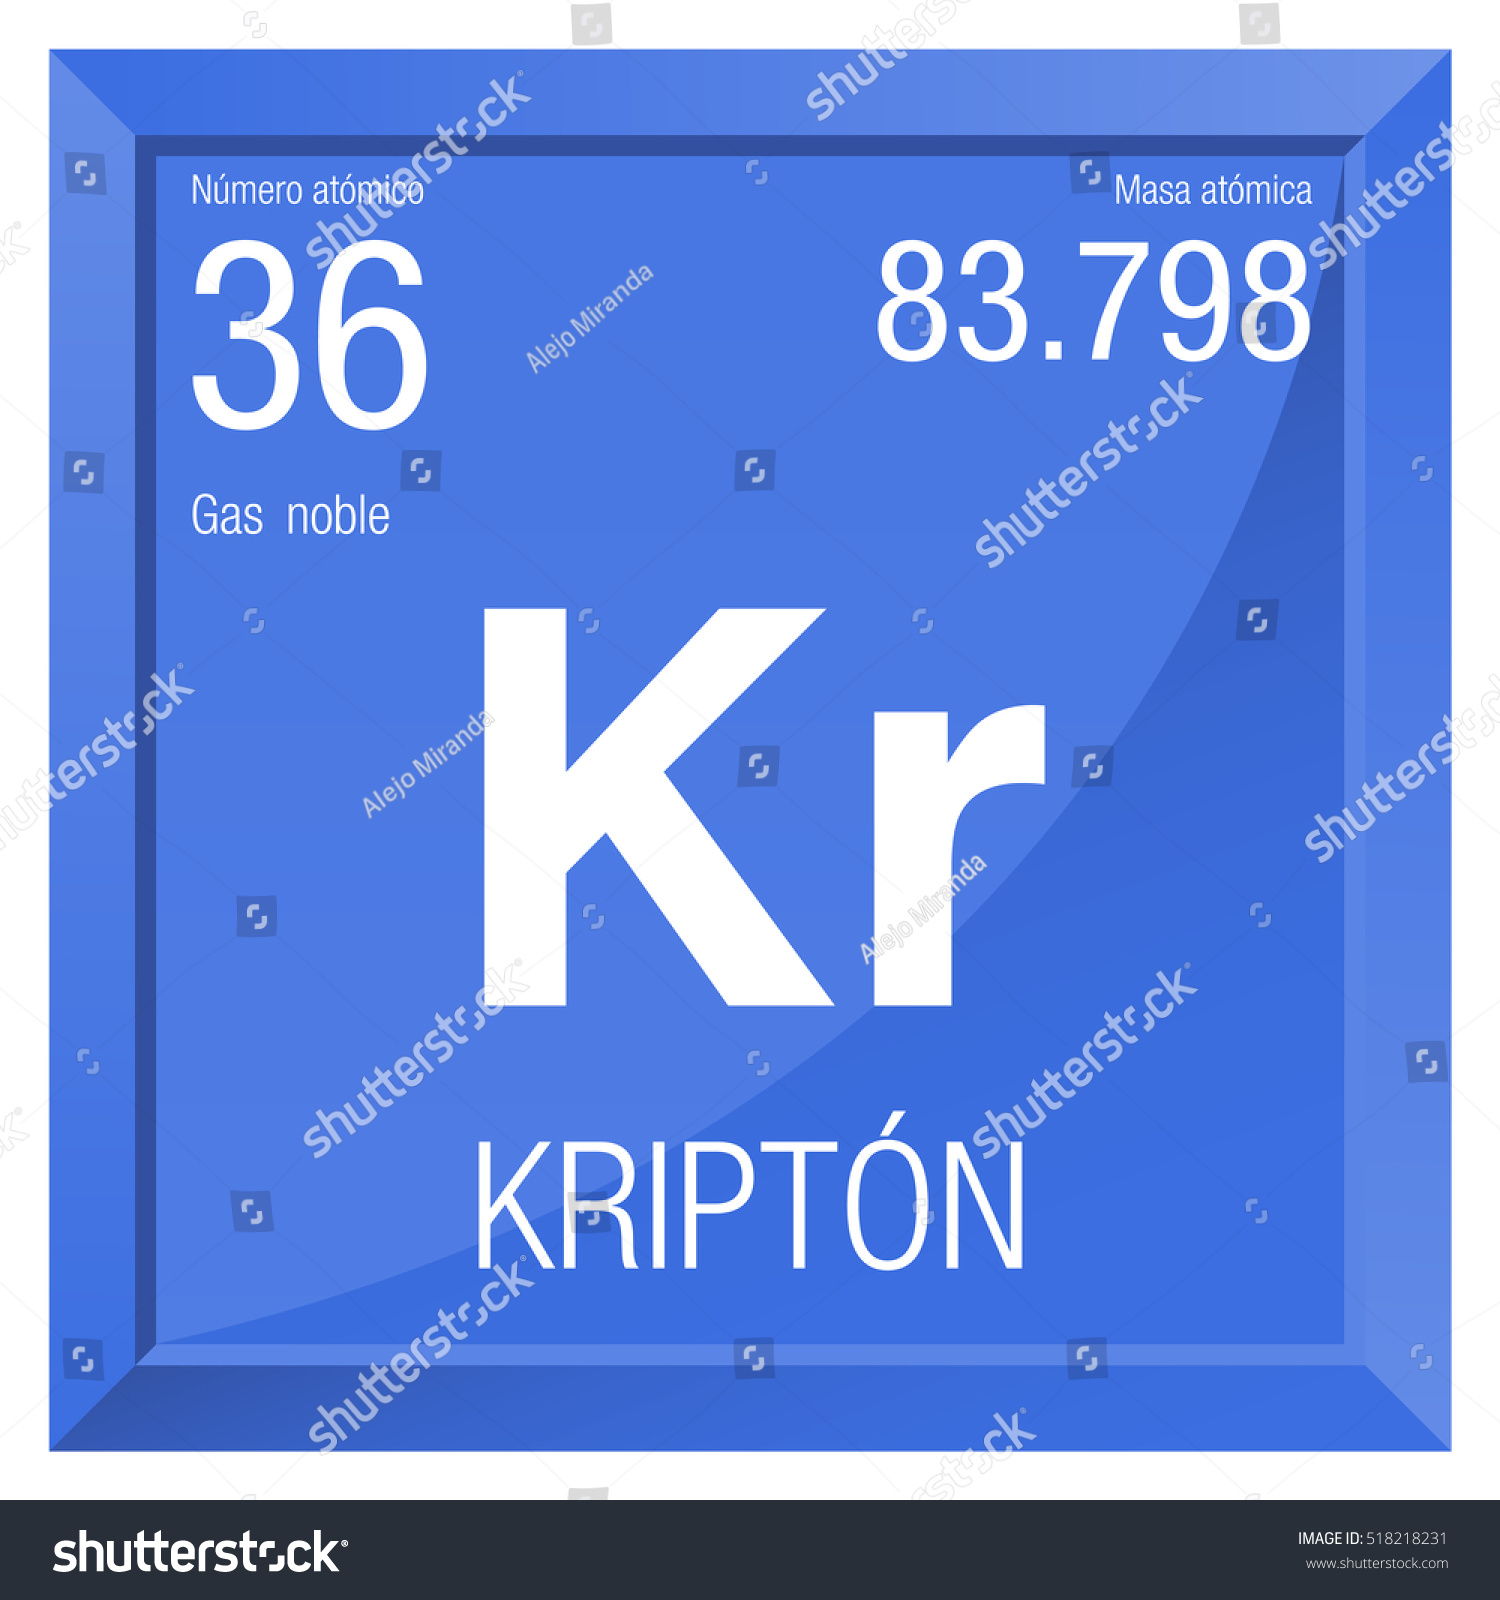 The symbol of mercury in the periodic table of elements images the symbol of mercury in the periodic table of elements images krypton symbol krypton spanish language gamestrikefo Images